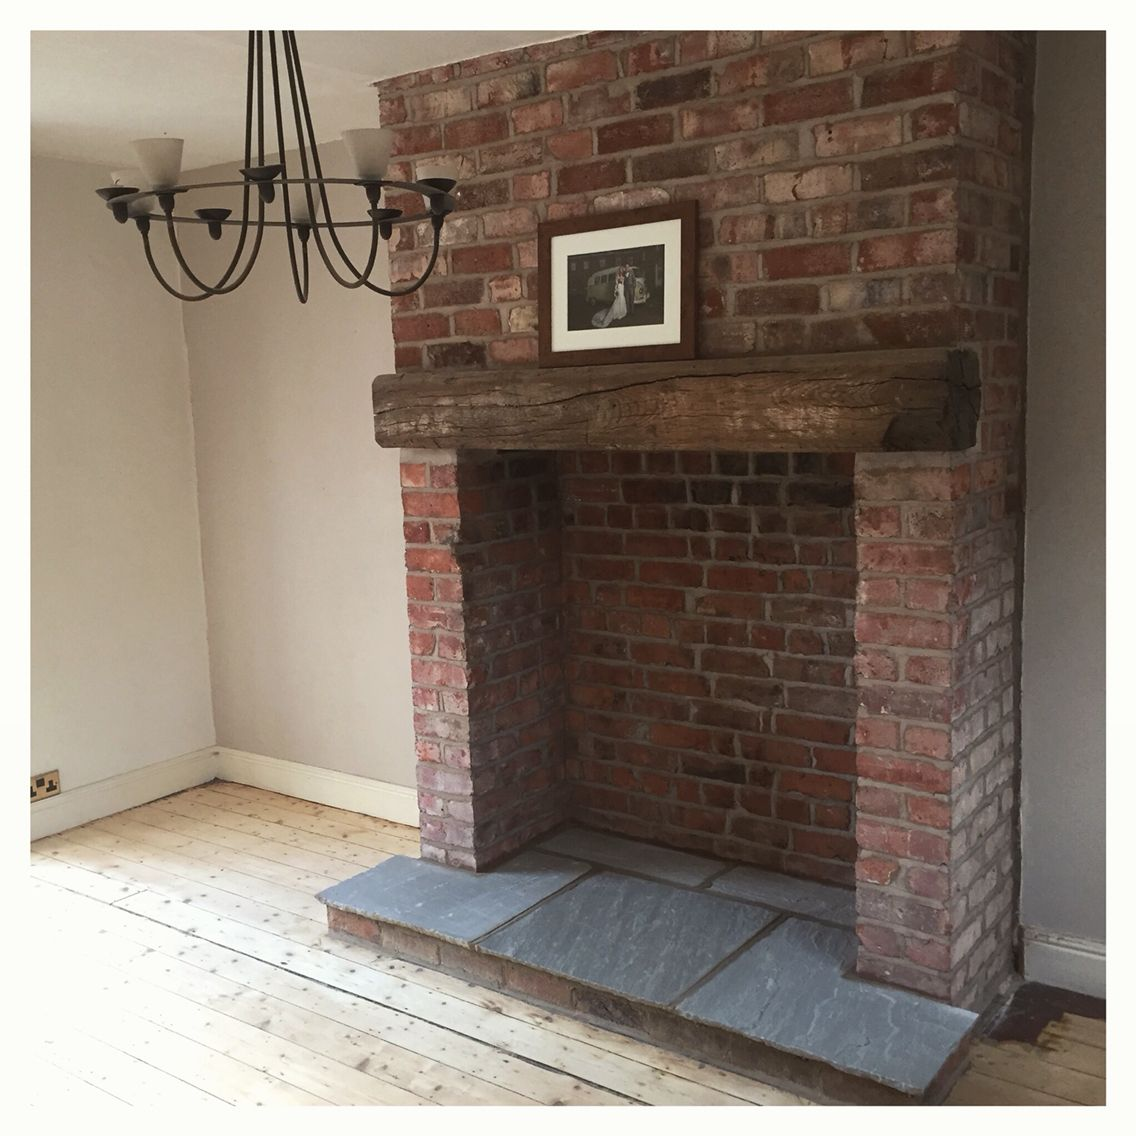 Ordinary Brick Fireplace Part - 8: Exposed Brick Fireplace With Indian Stone Hearth And Reclaimed Wooden Lintel